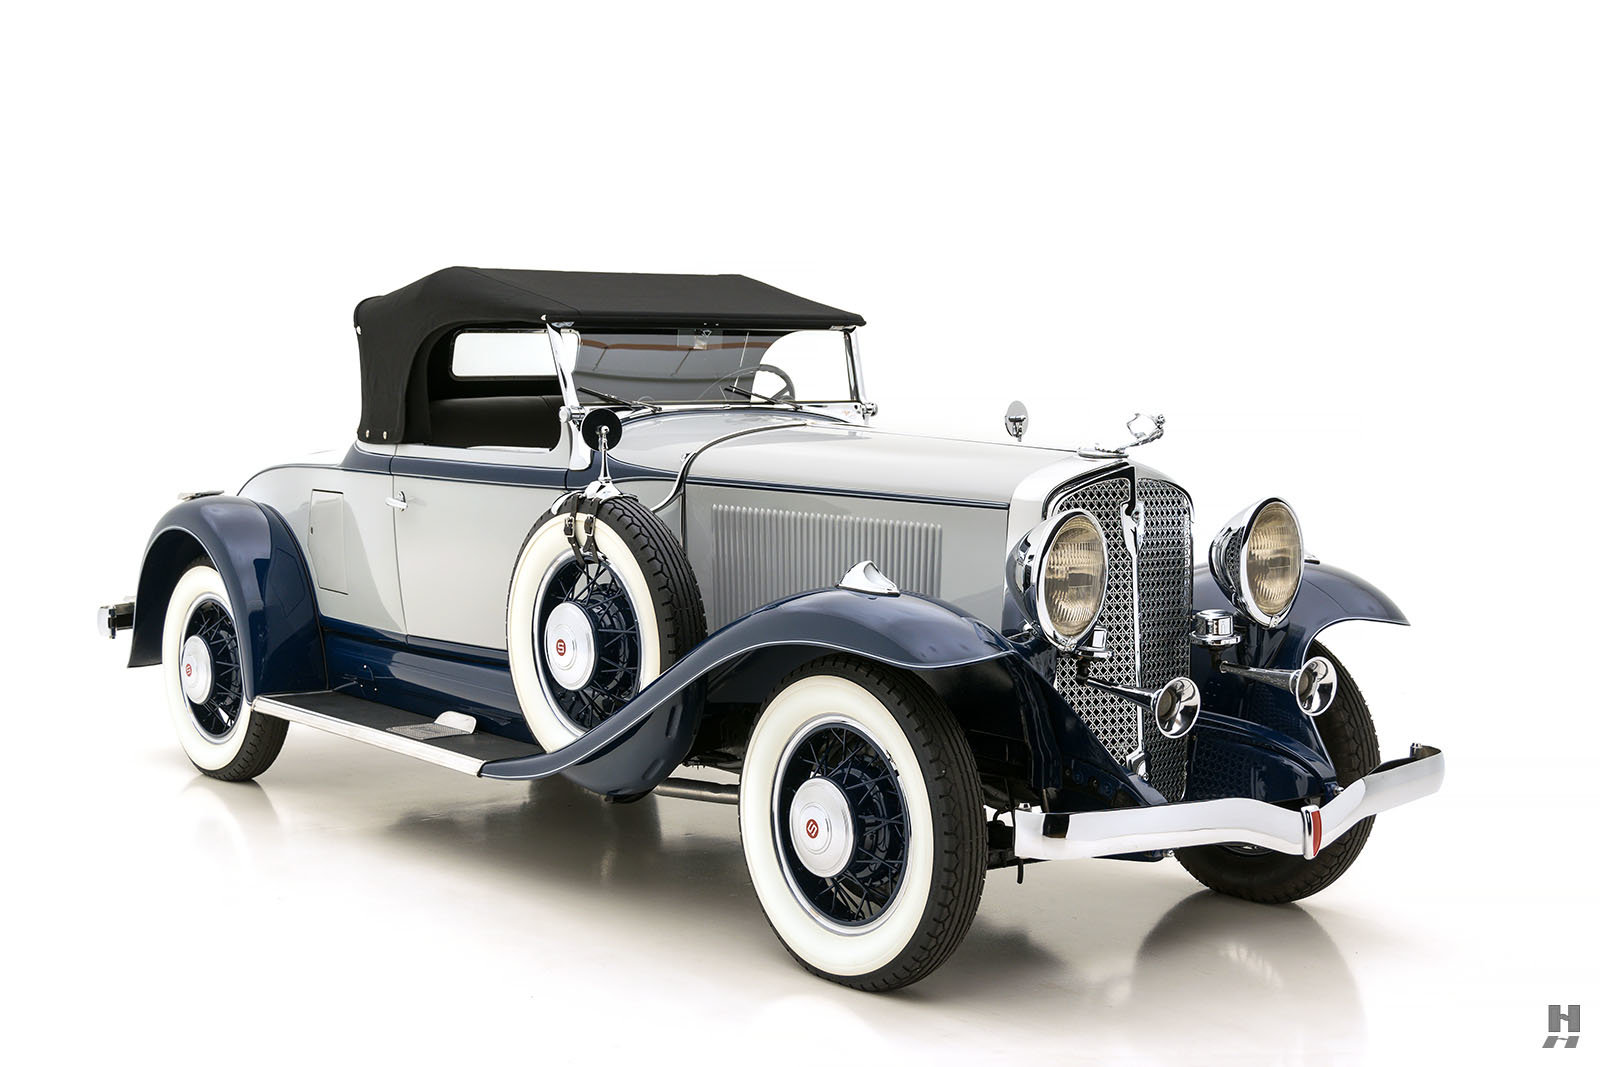 1931 STUDEBAKER PRESIDENT ROADSTER For Sale (picture 2 of 6)